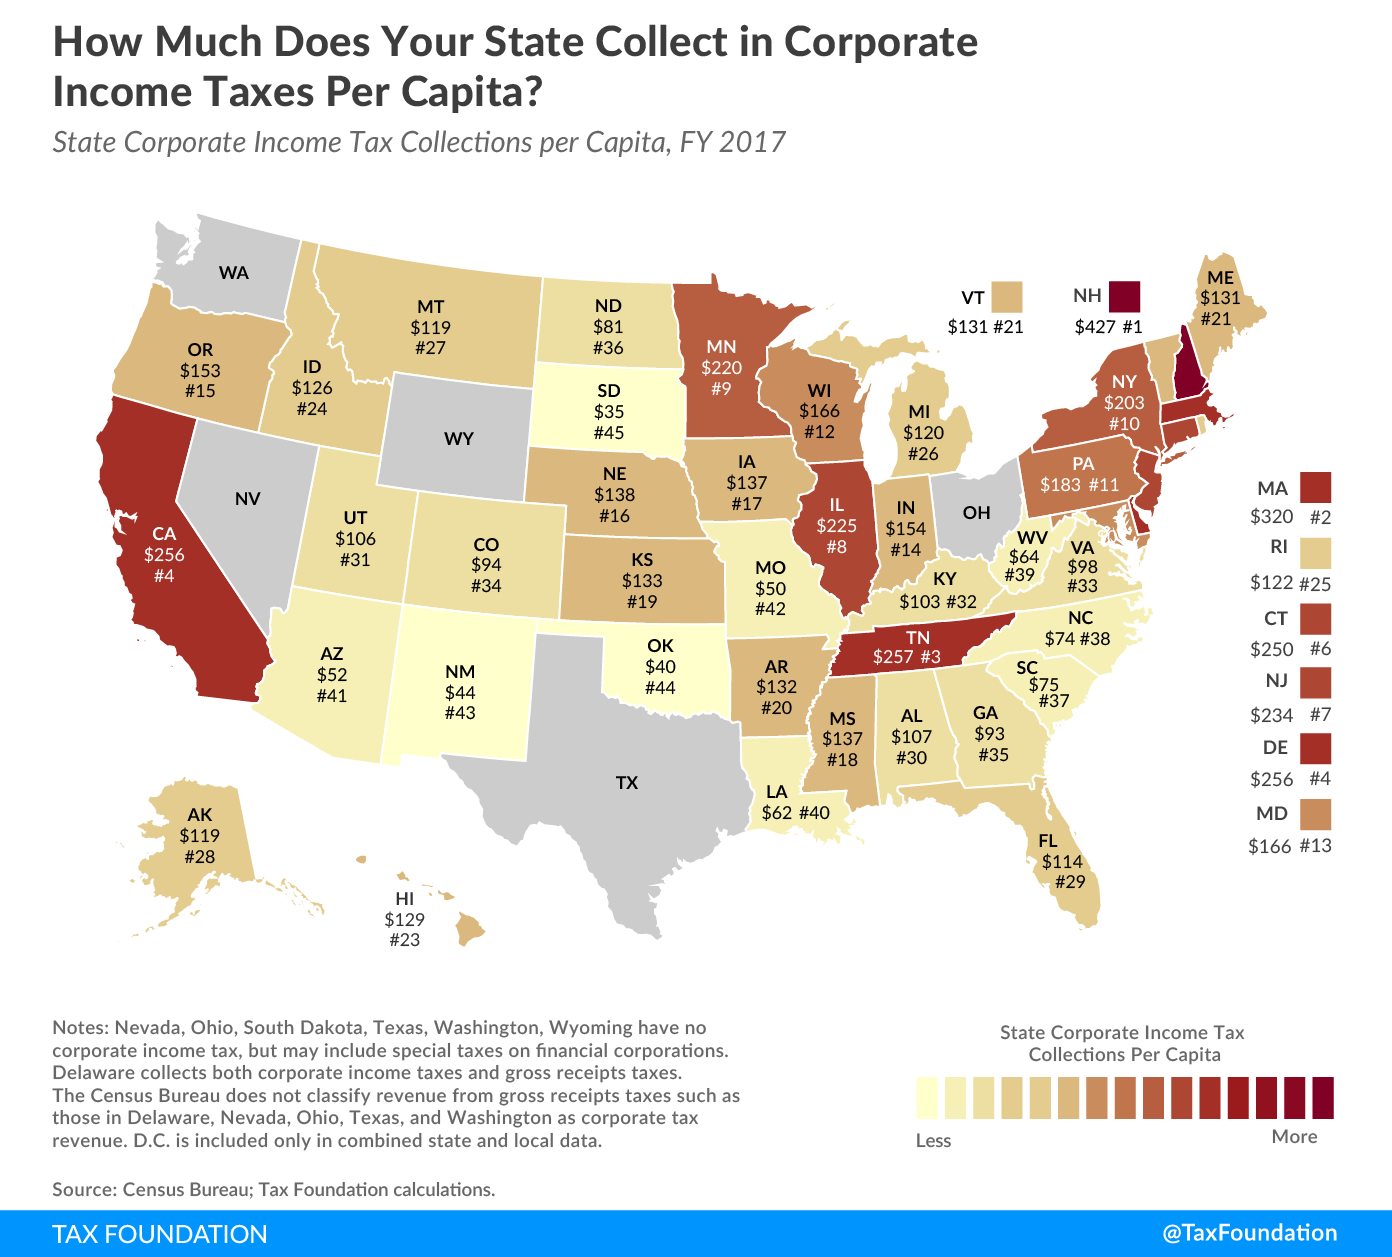 How Much Does Your State Collect in Corporate Income Taxes Per Capita?